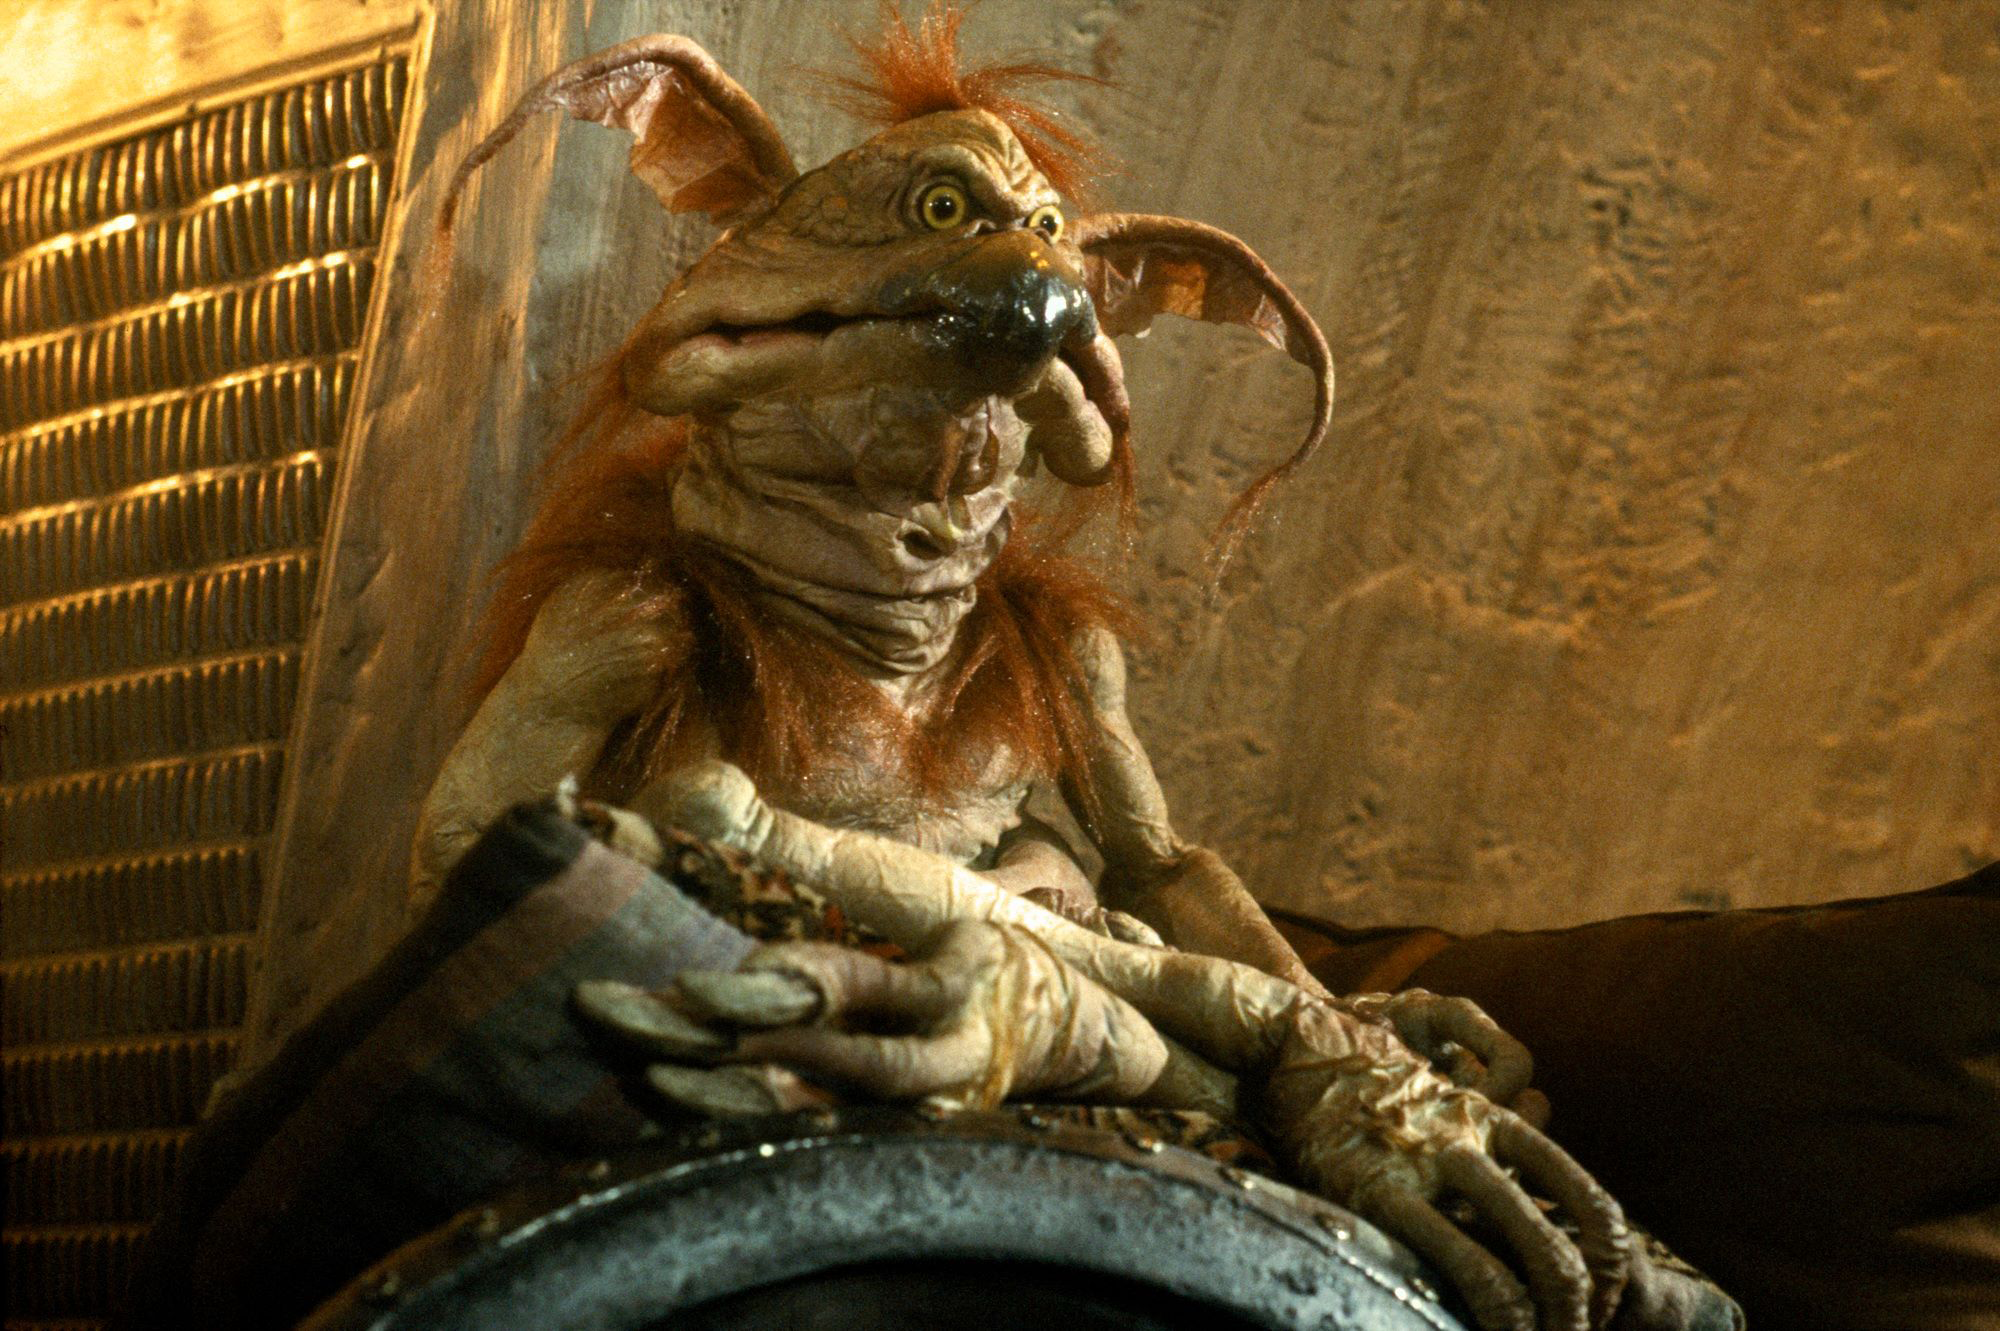 """See you in your dreams"" - Salacious Crumb"